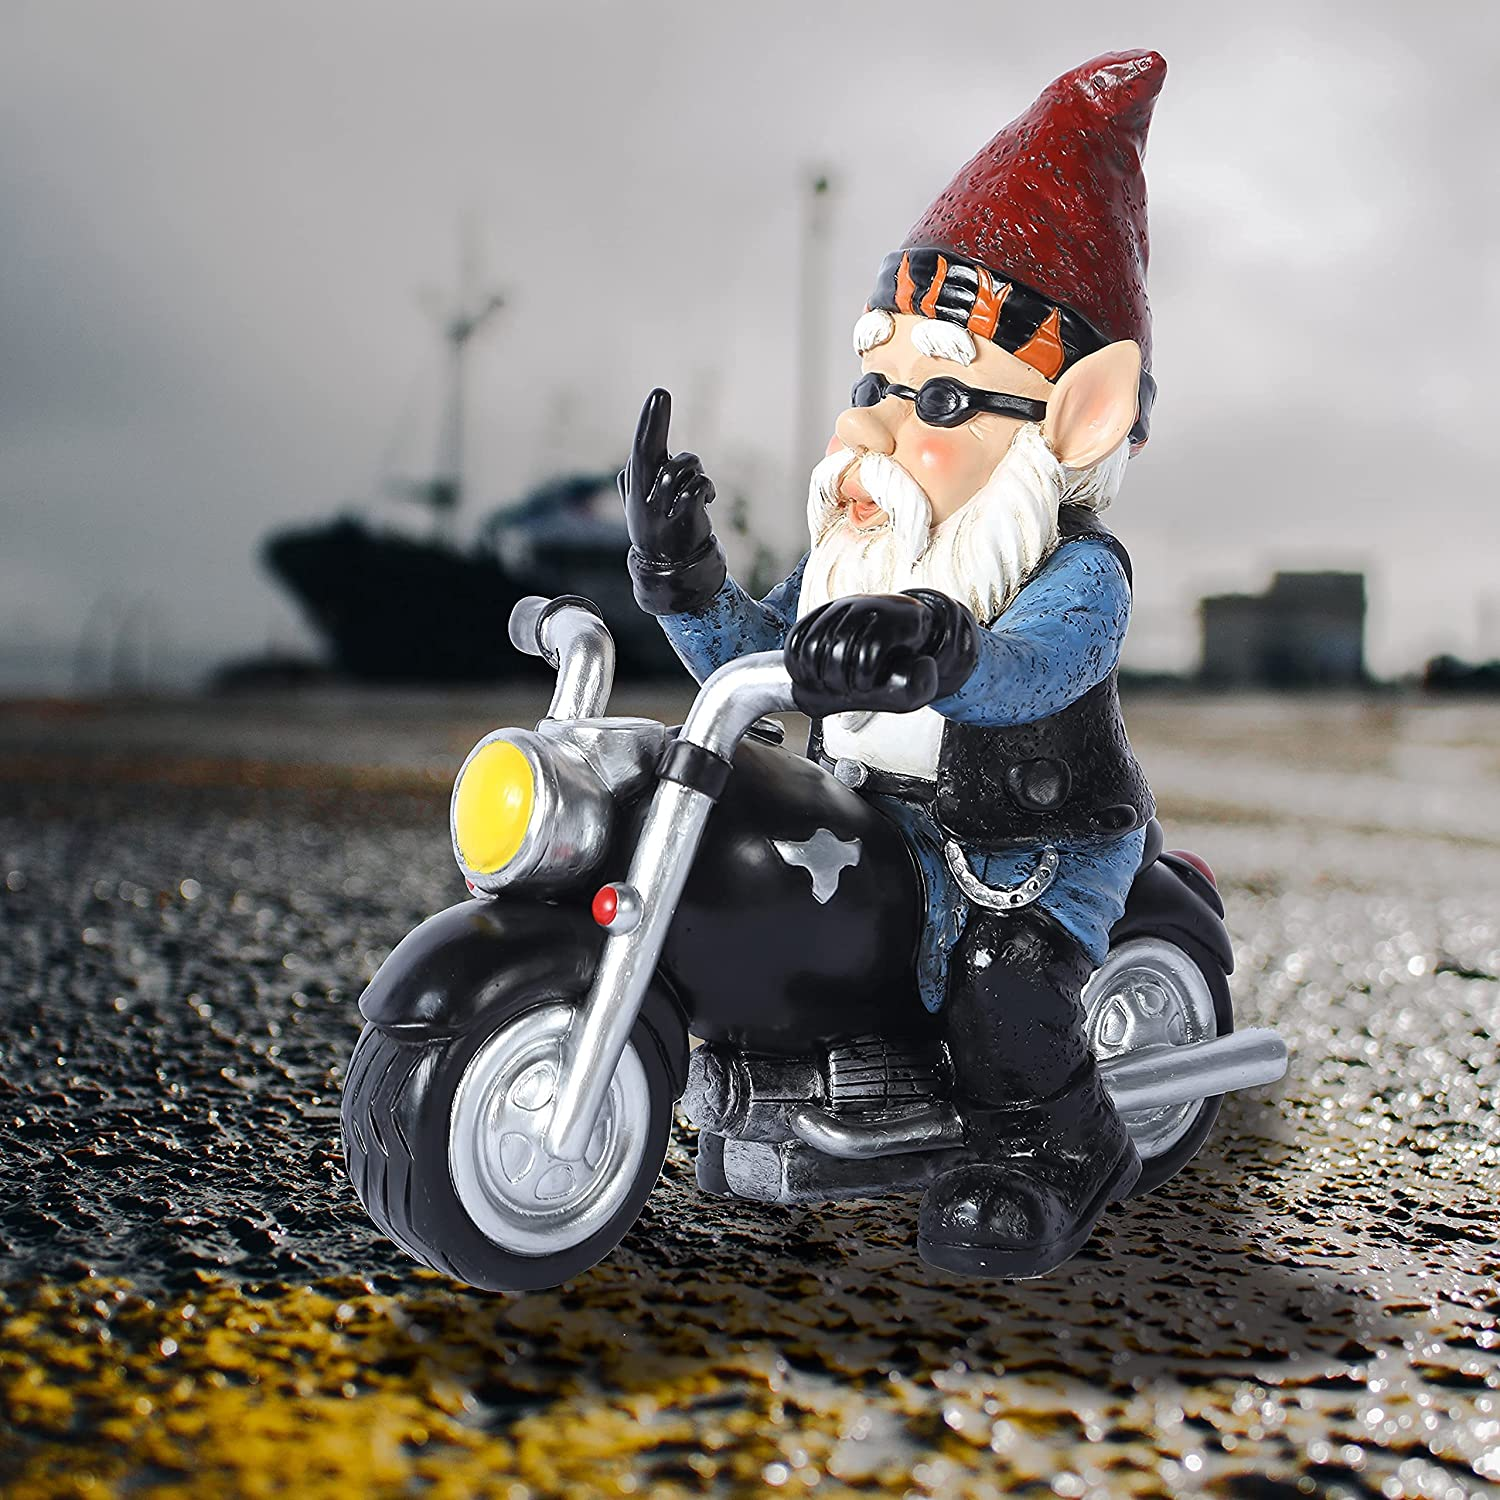 Funny Garden Gnome Riding Motorcycle Biker Statue 6 in Tall Outdoor Decor Fairy Lawn Yard Art Patio Decorations Full Color Polyresin Naughty Garden Figurines Xmas Tree Knomes Desktop Ornaments